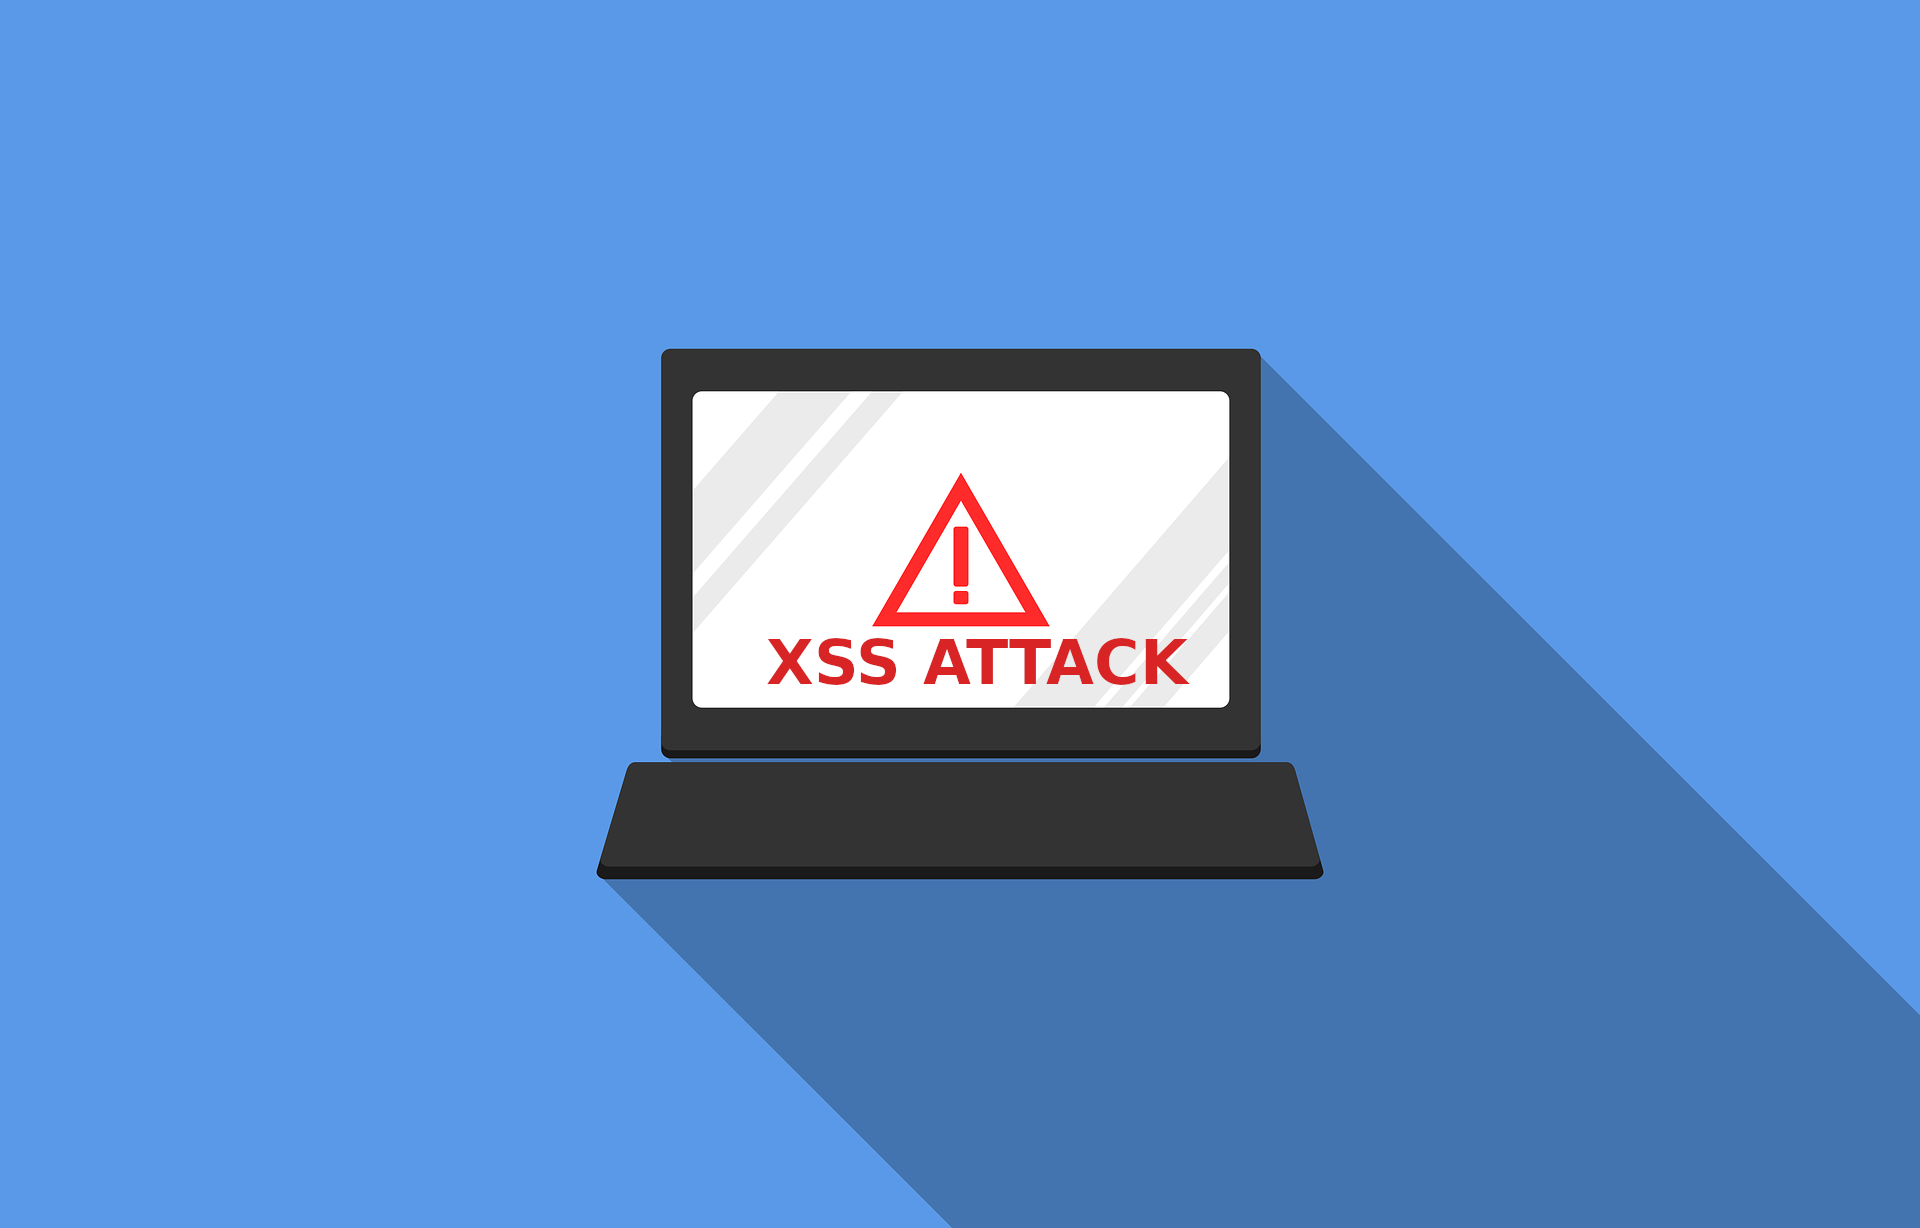 xss_attack